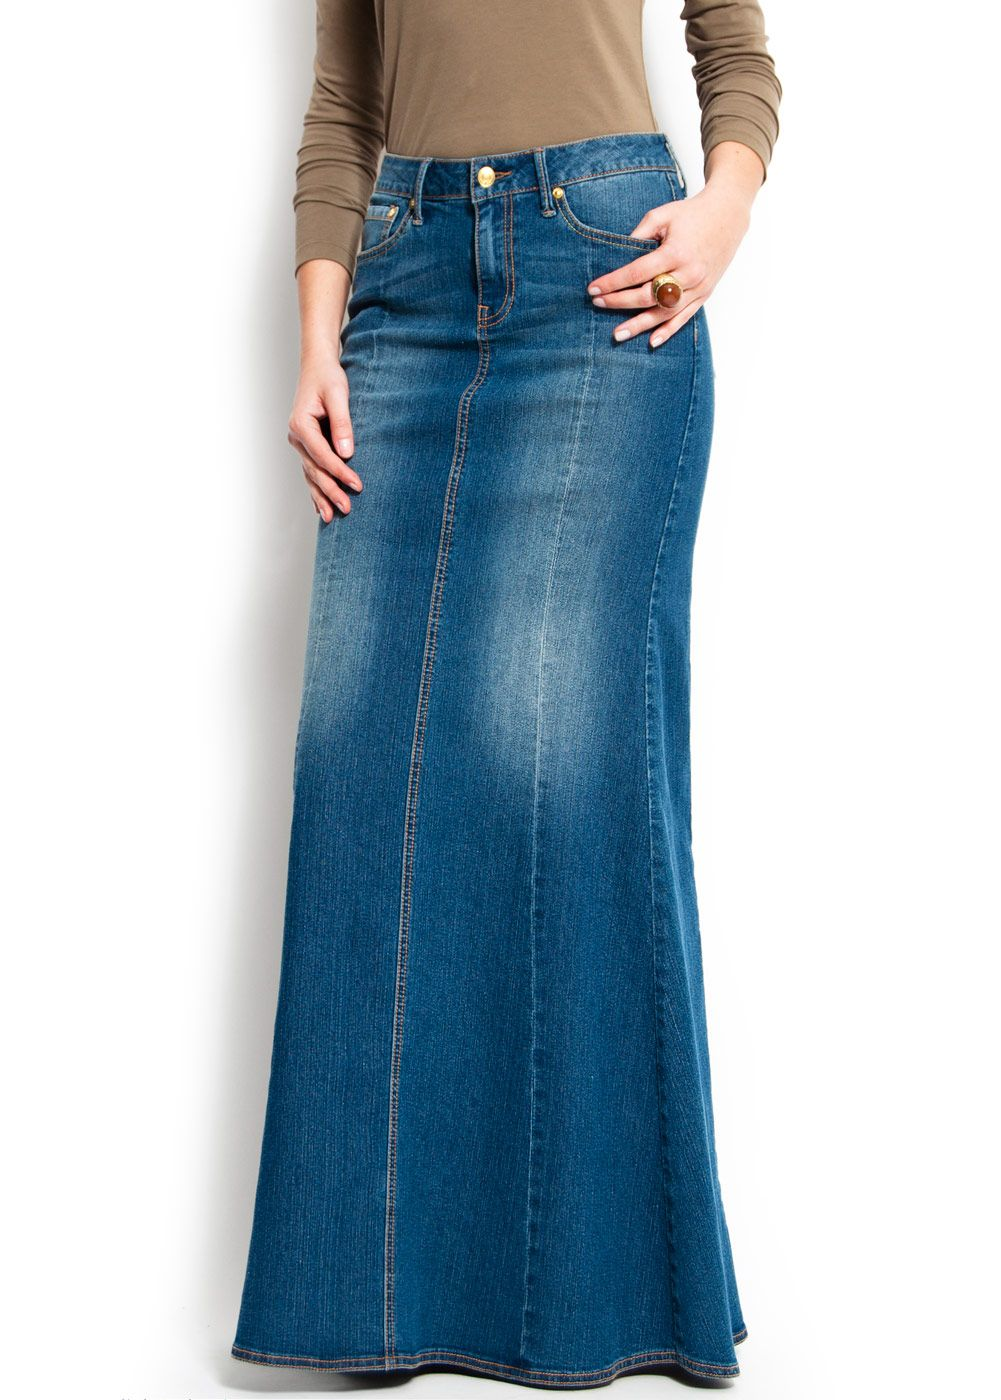 7bd204a2fb love this long denim skirt! I really feel its time these made a comeback. I  used to live in a skirt like this.